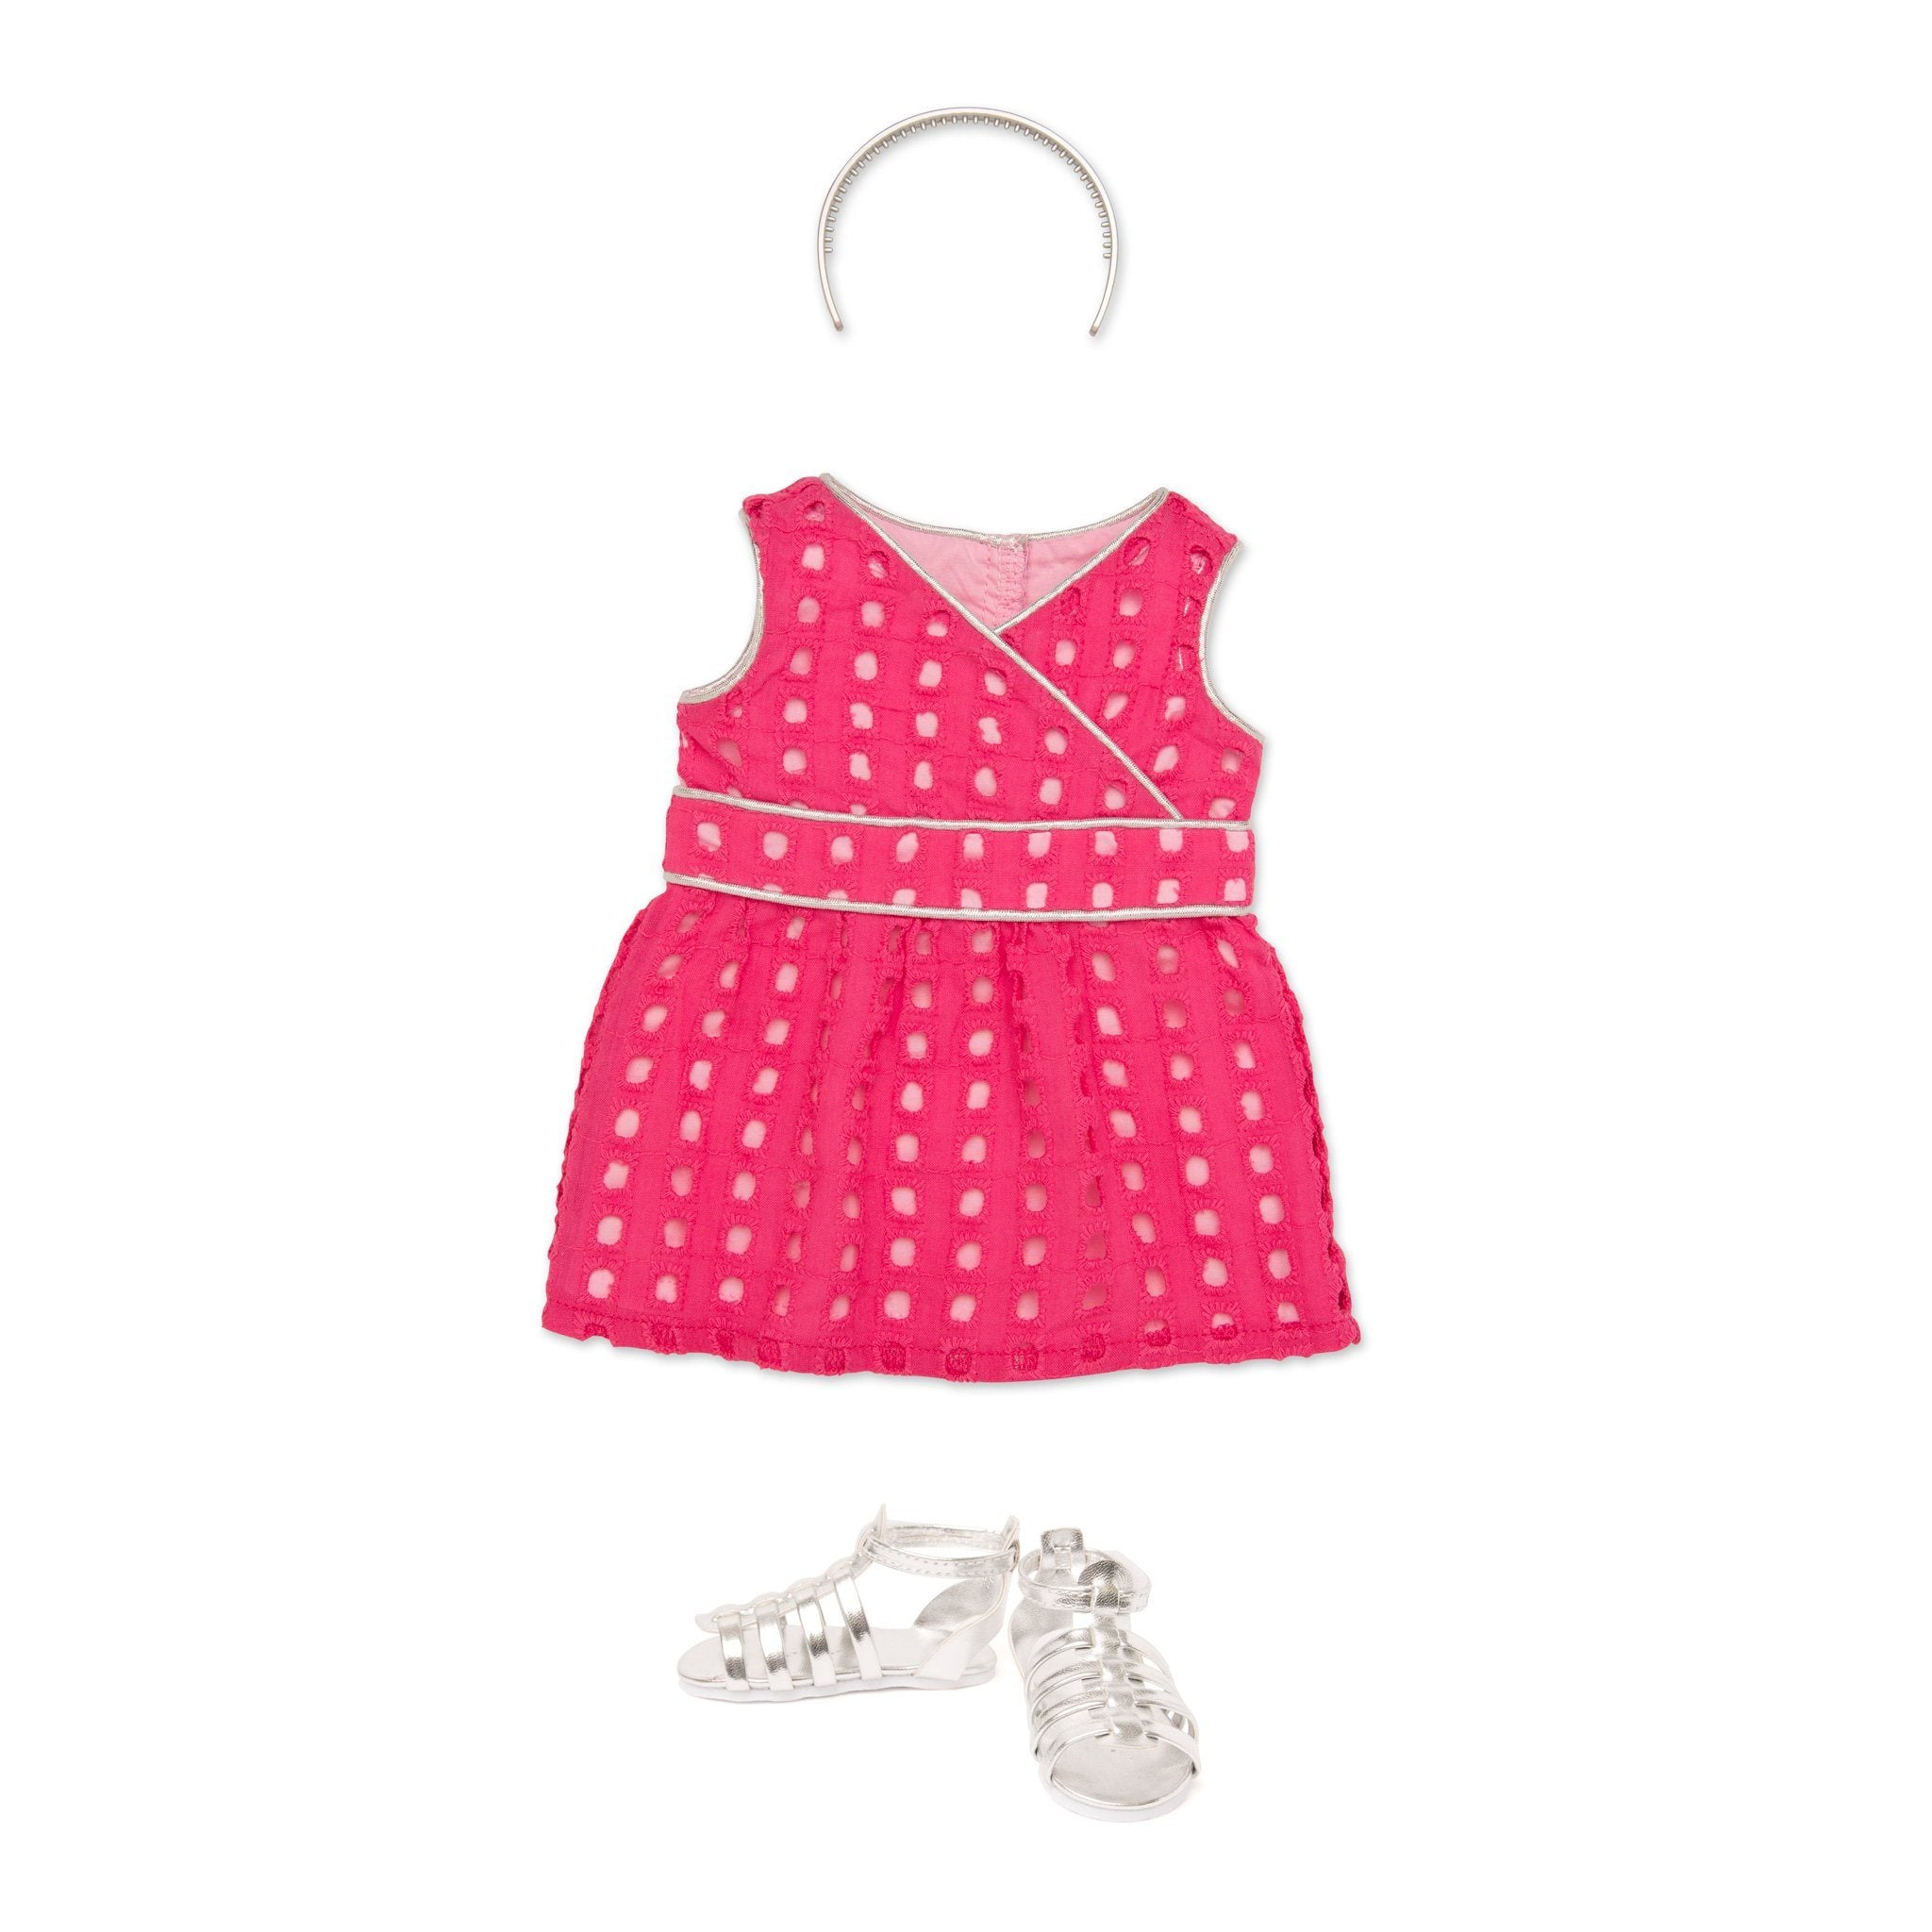 Pink eyelet dress with silver piping, silver headband and silver sandals fits all 18 inch dolls.